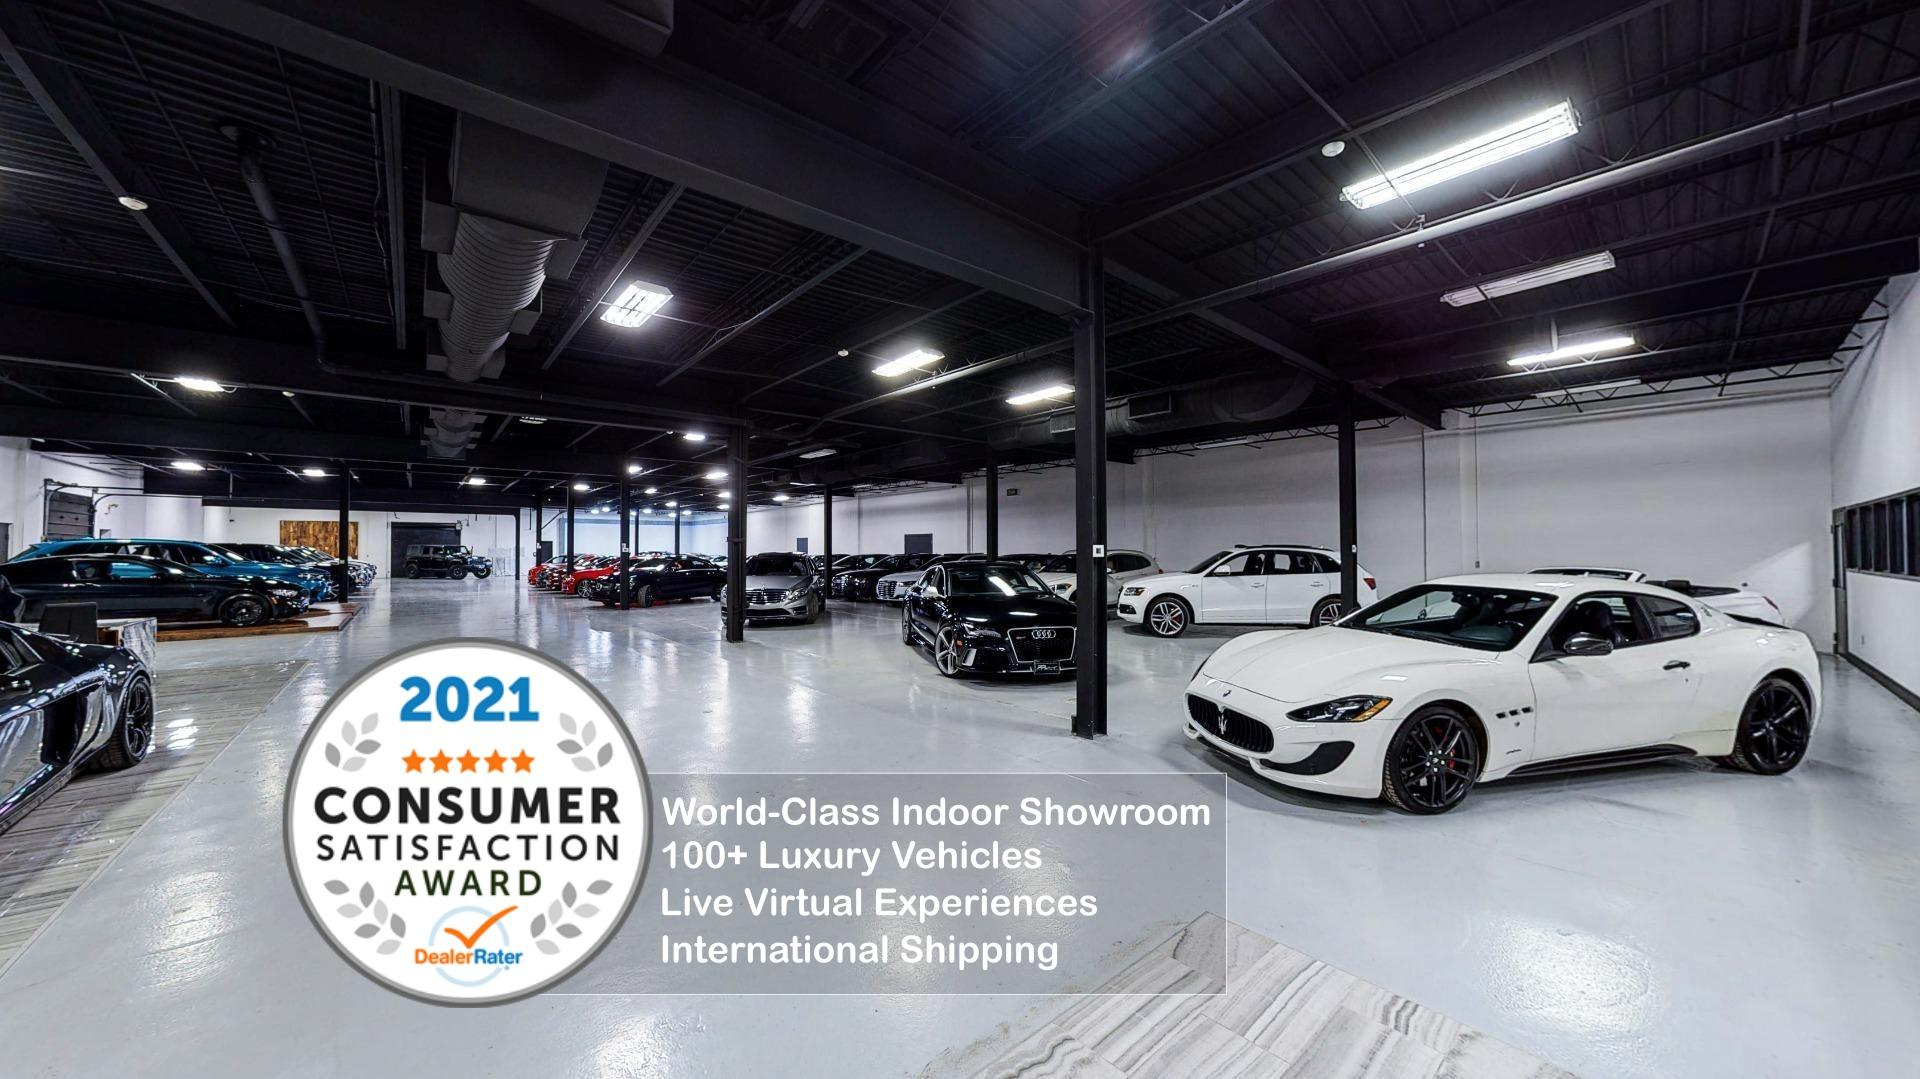 Used 2020 Chevrolet Malibu LT for sale $17,495 at Perfect Auto Collection in Akron OH 44310 3